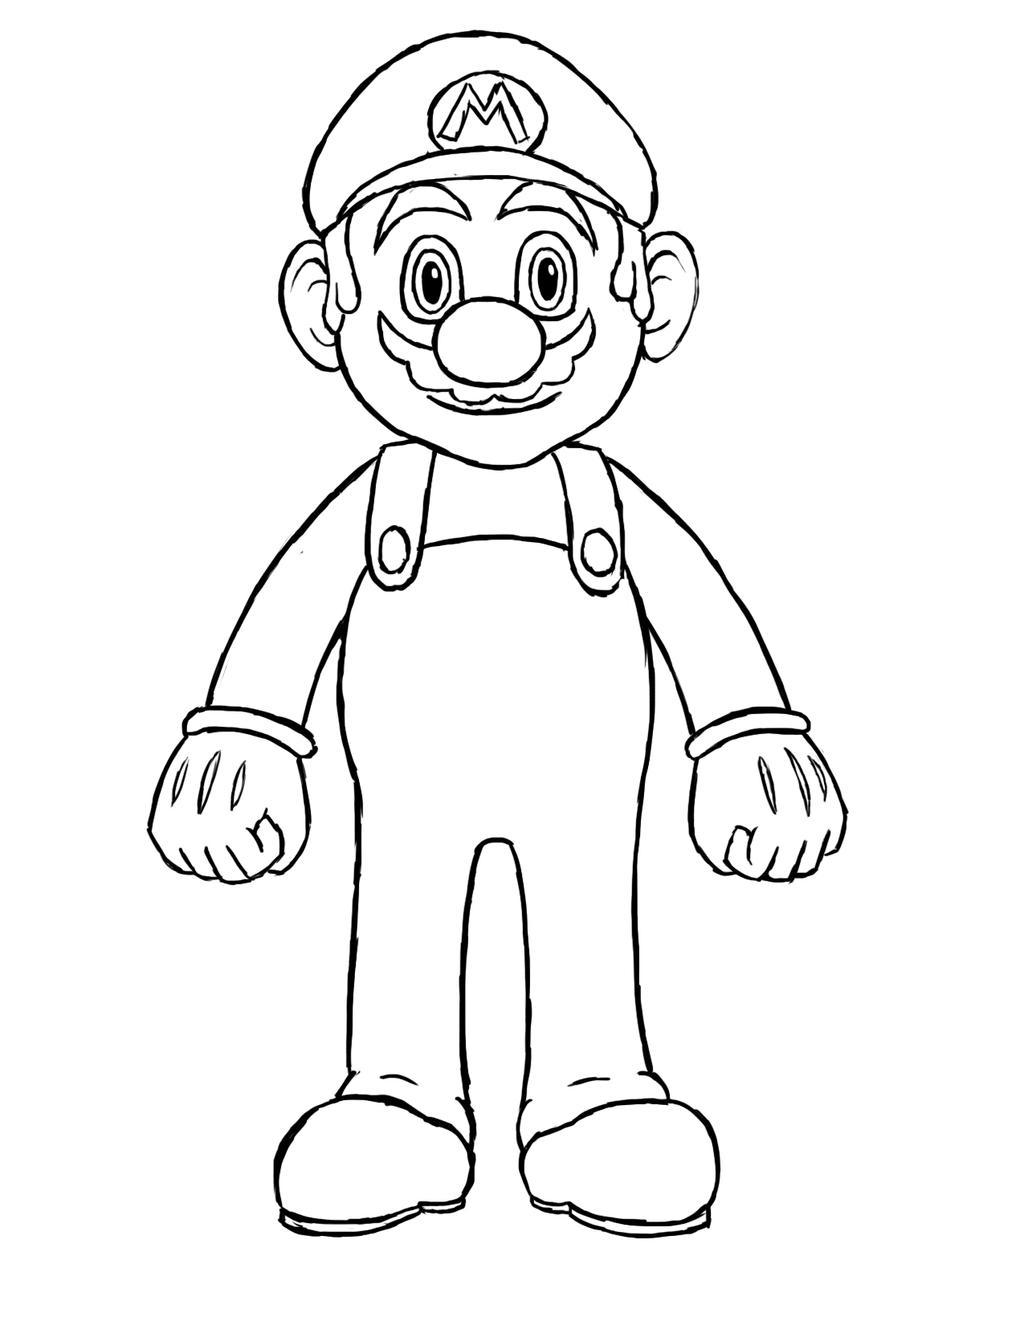 how to draw the power up lock from mario